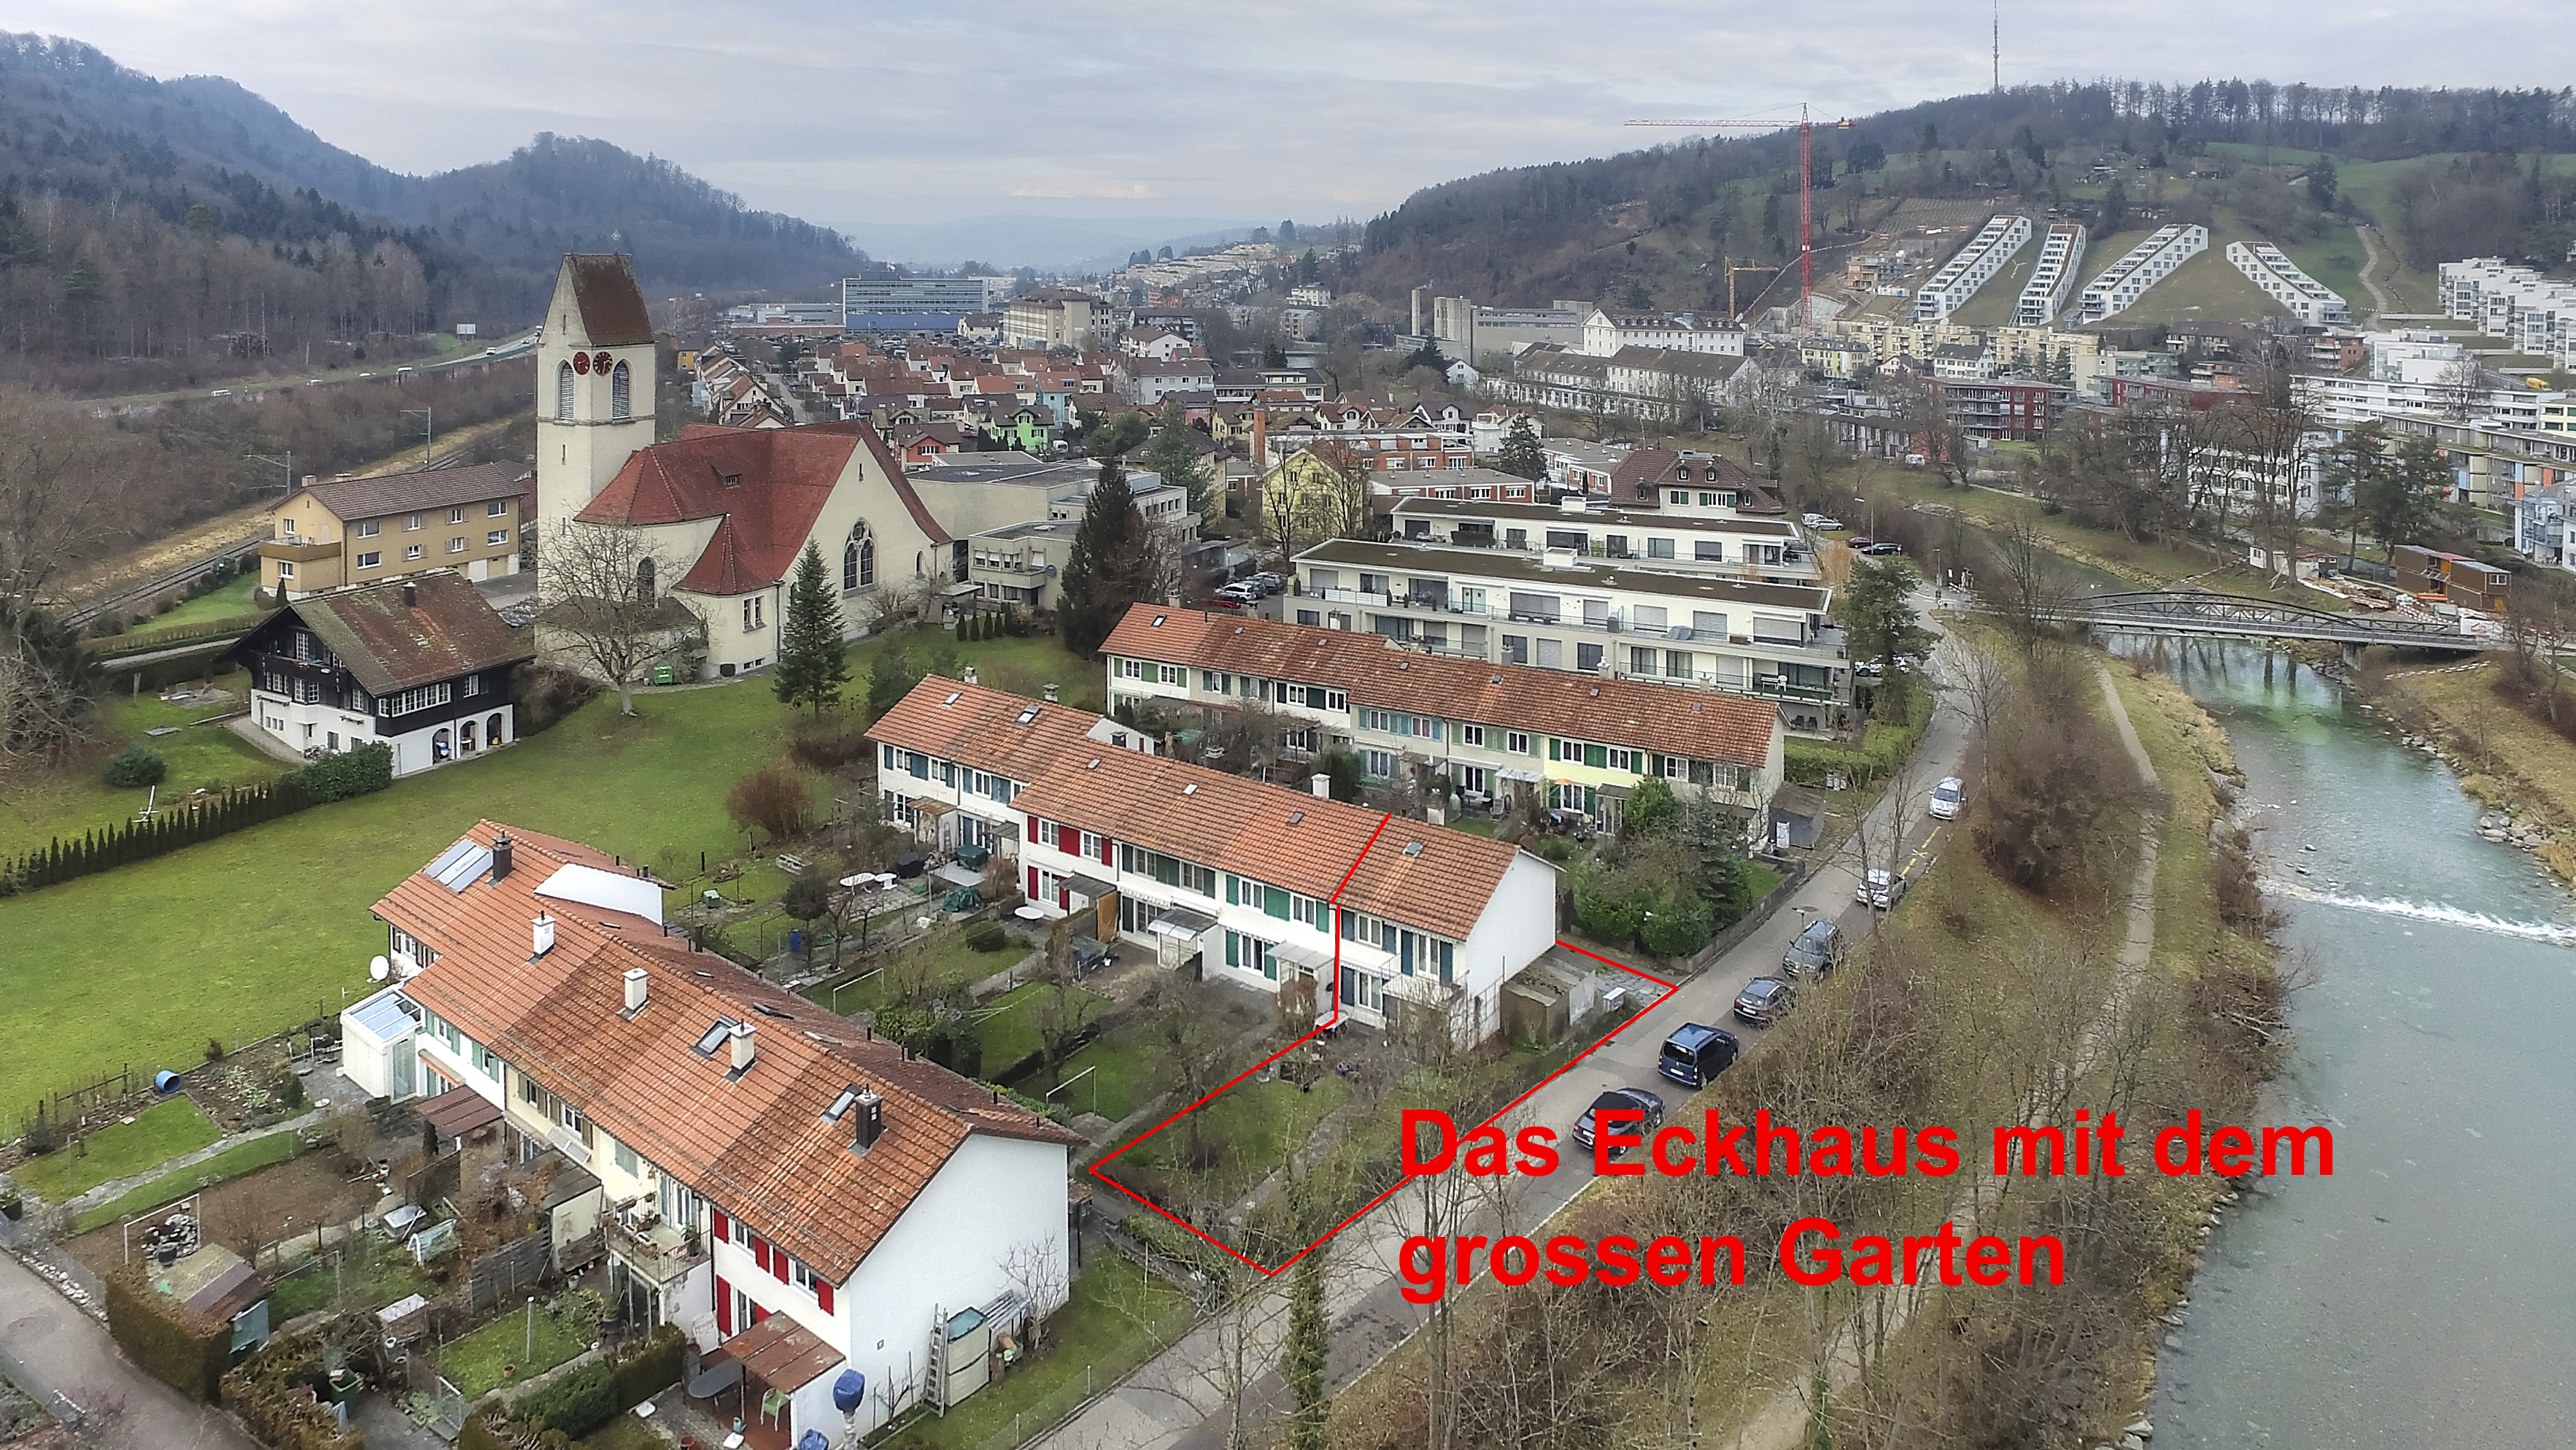 Commercial property to rent in Winterthur - Compare 298